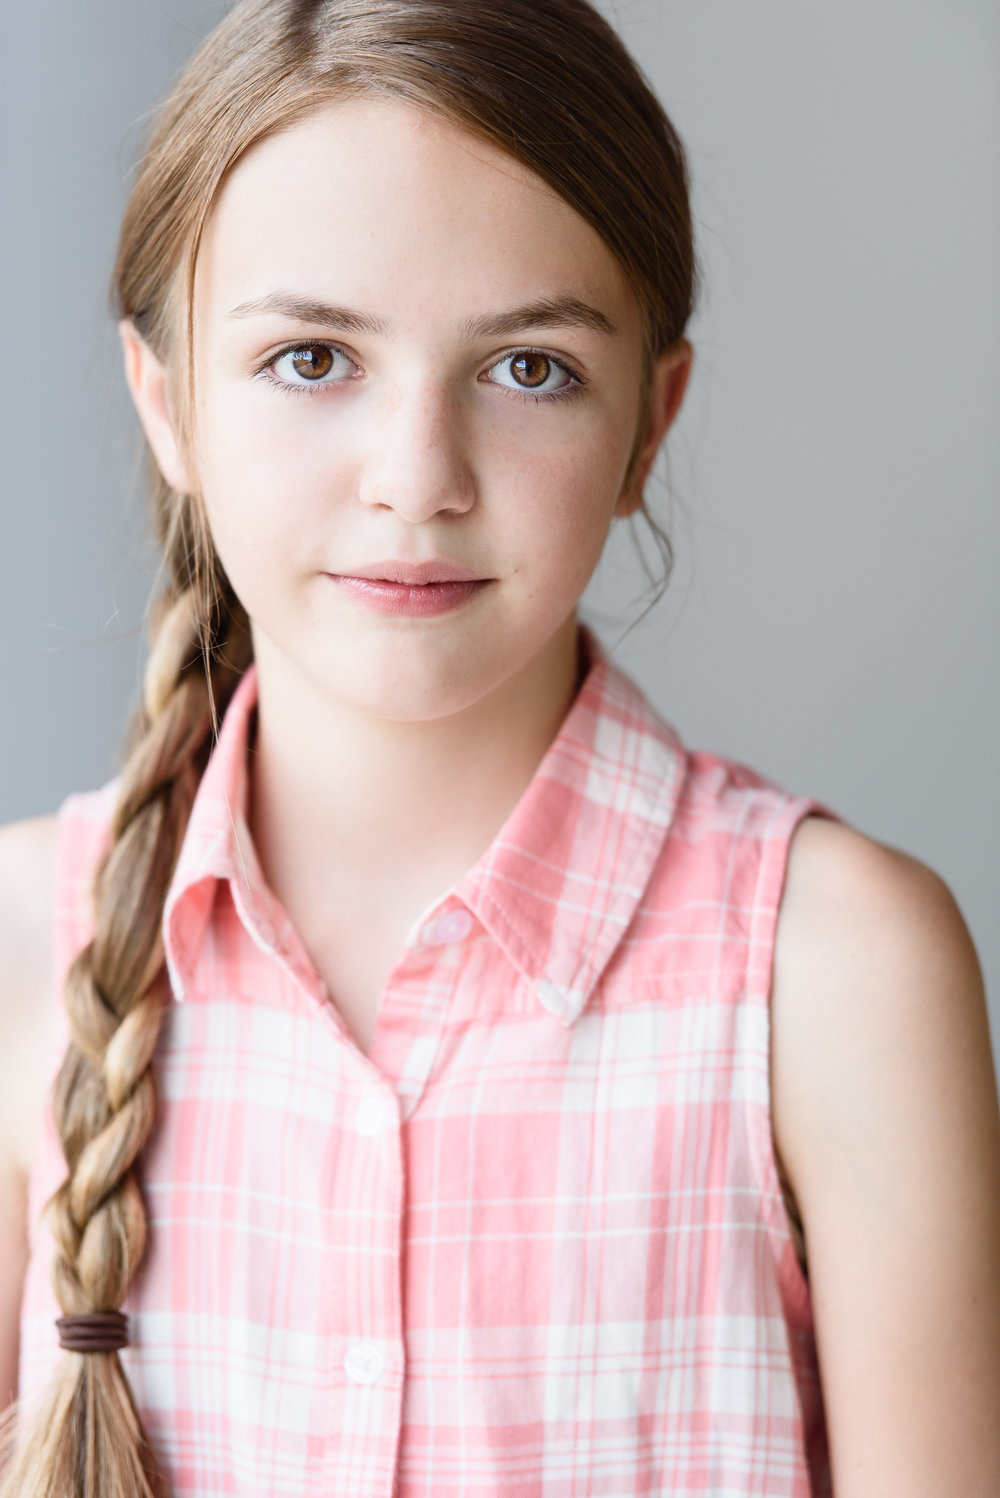 ChildrenHeadshots011.jpg